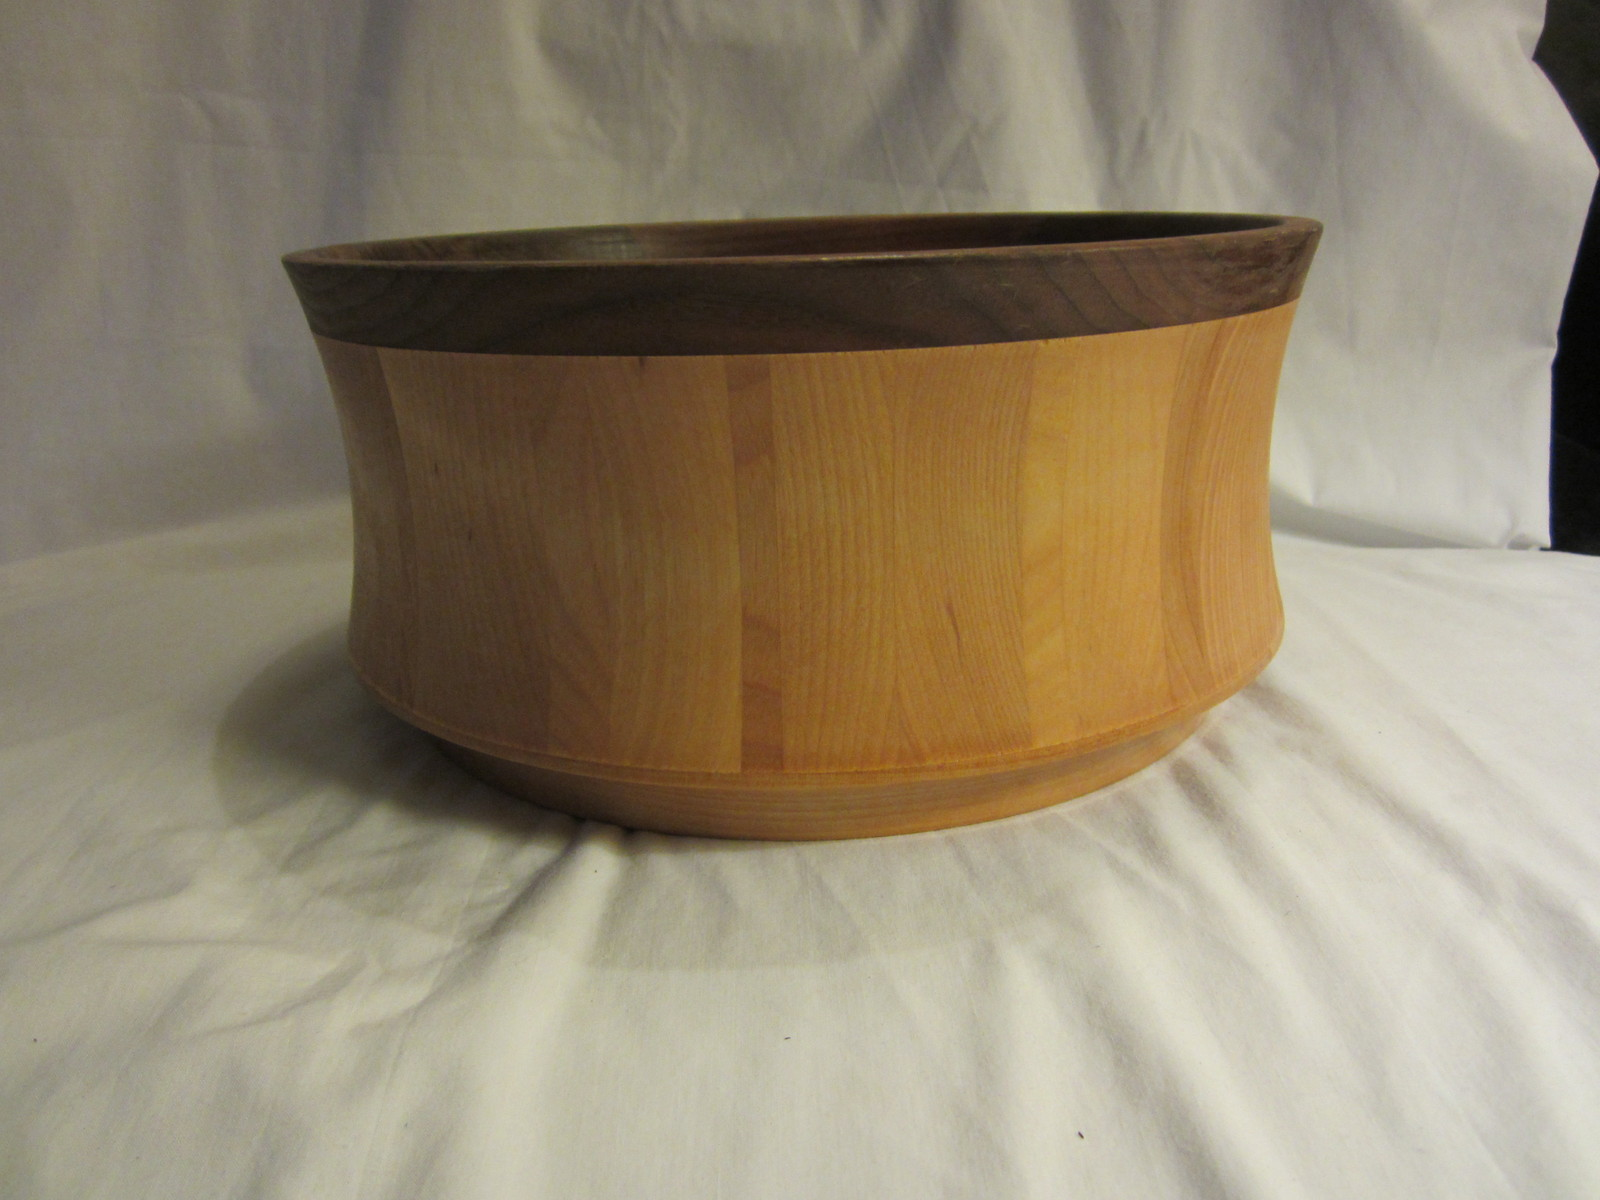 "Williams Sonoma Vermont Bowls Signed McLeod 12"" Birch Wood Salad, Serving Bowls"